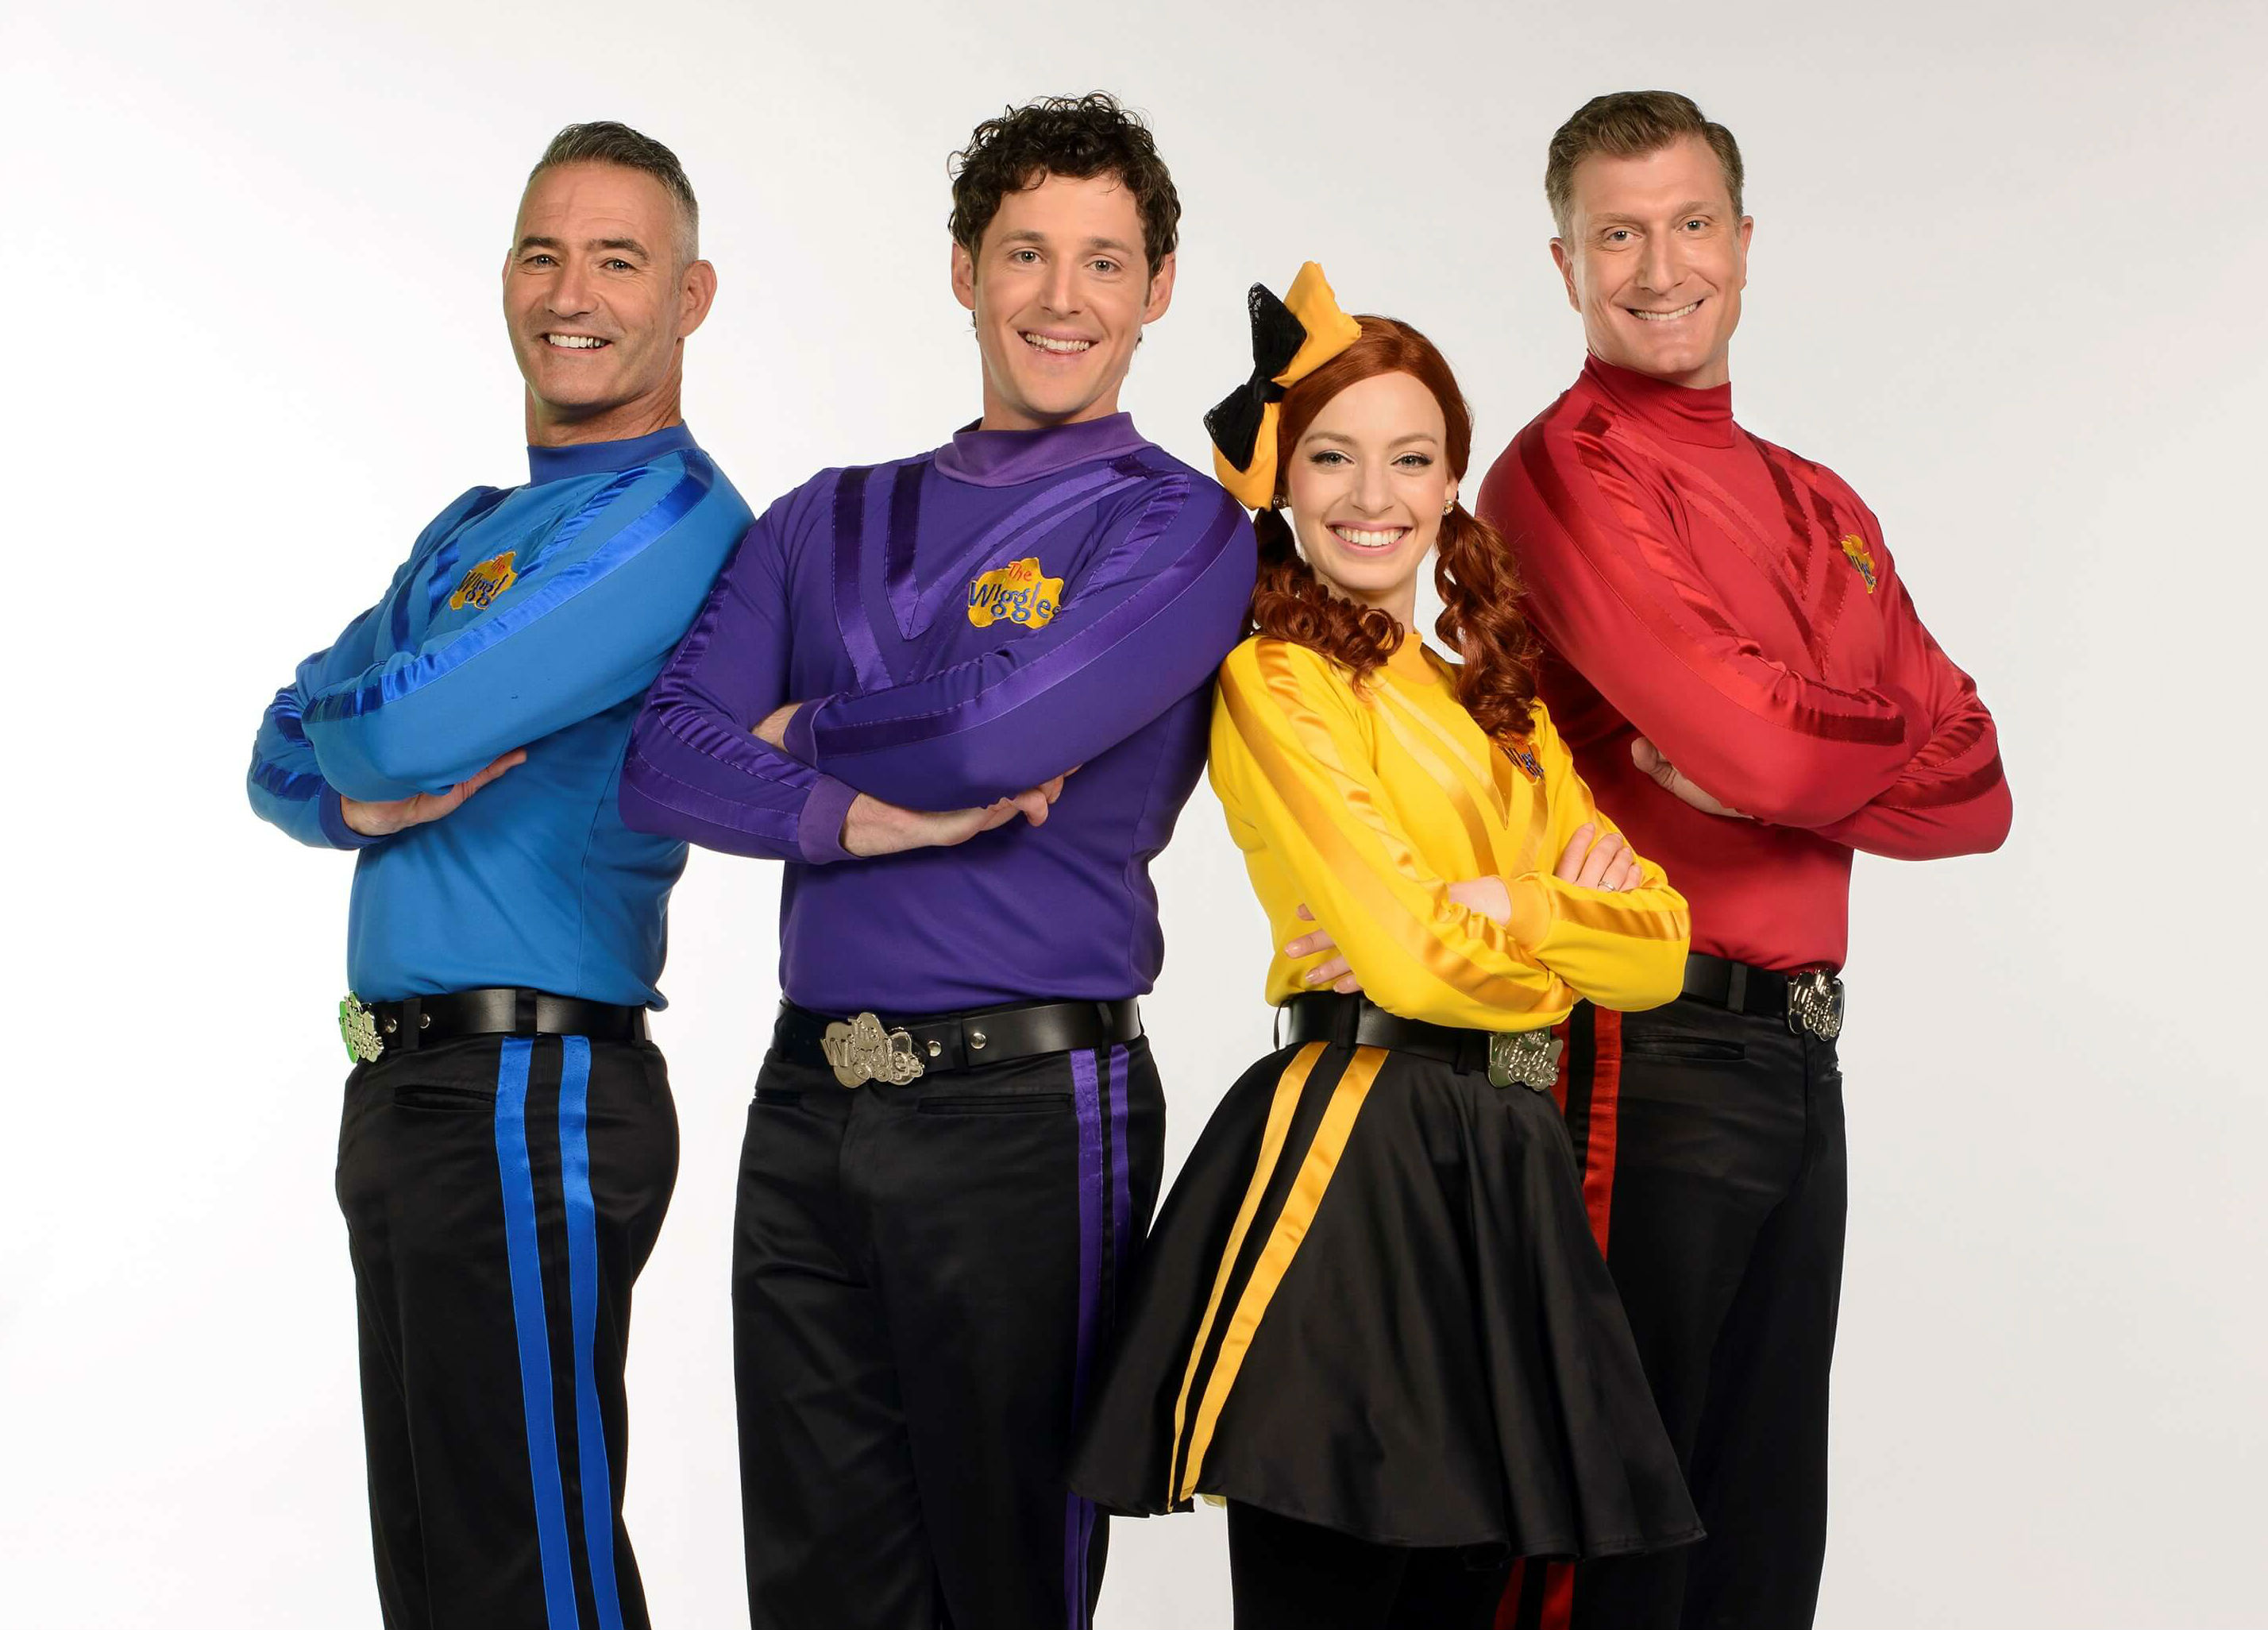 What have The Wiggles and Hunters & Collectors got in common?